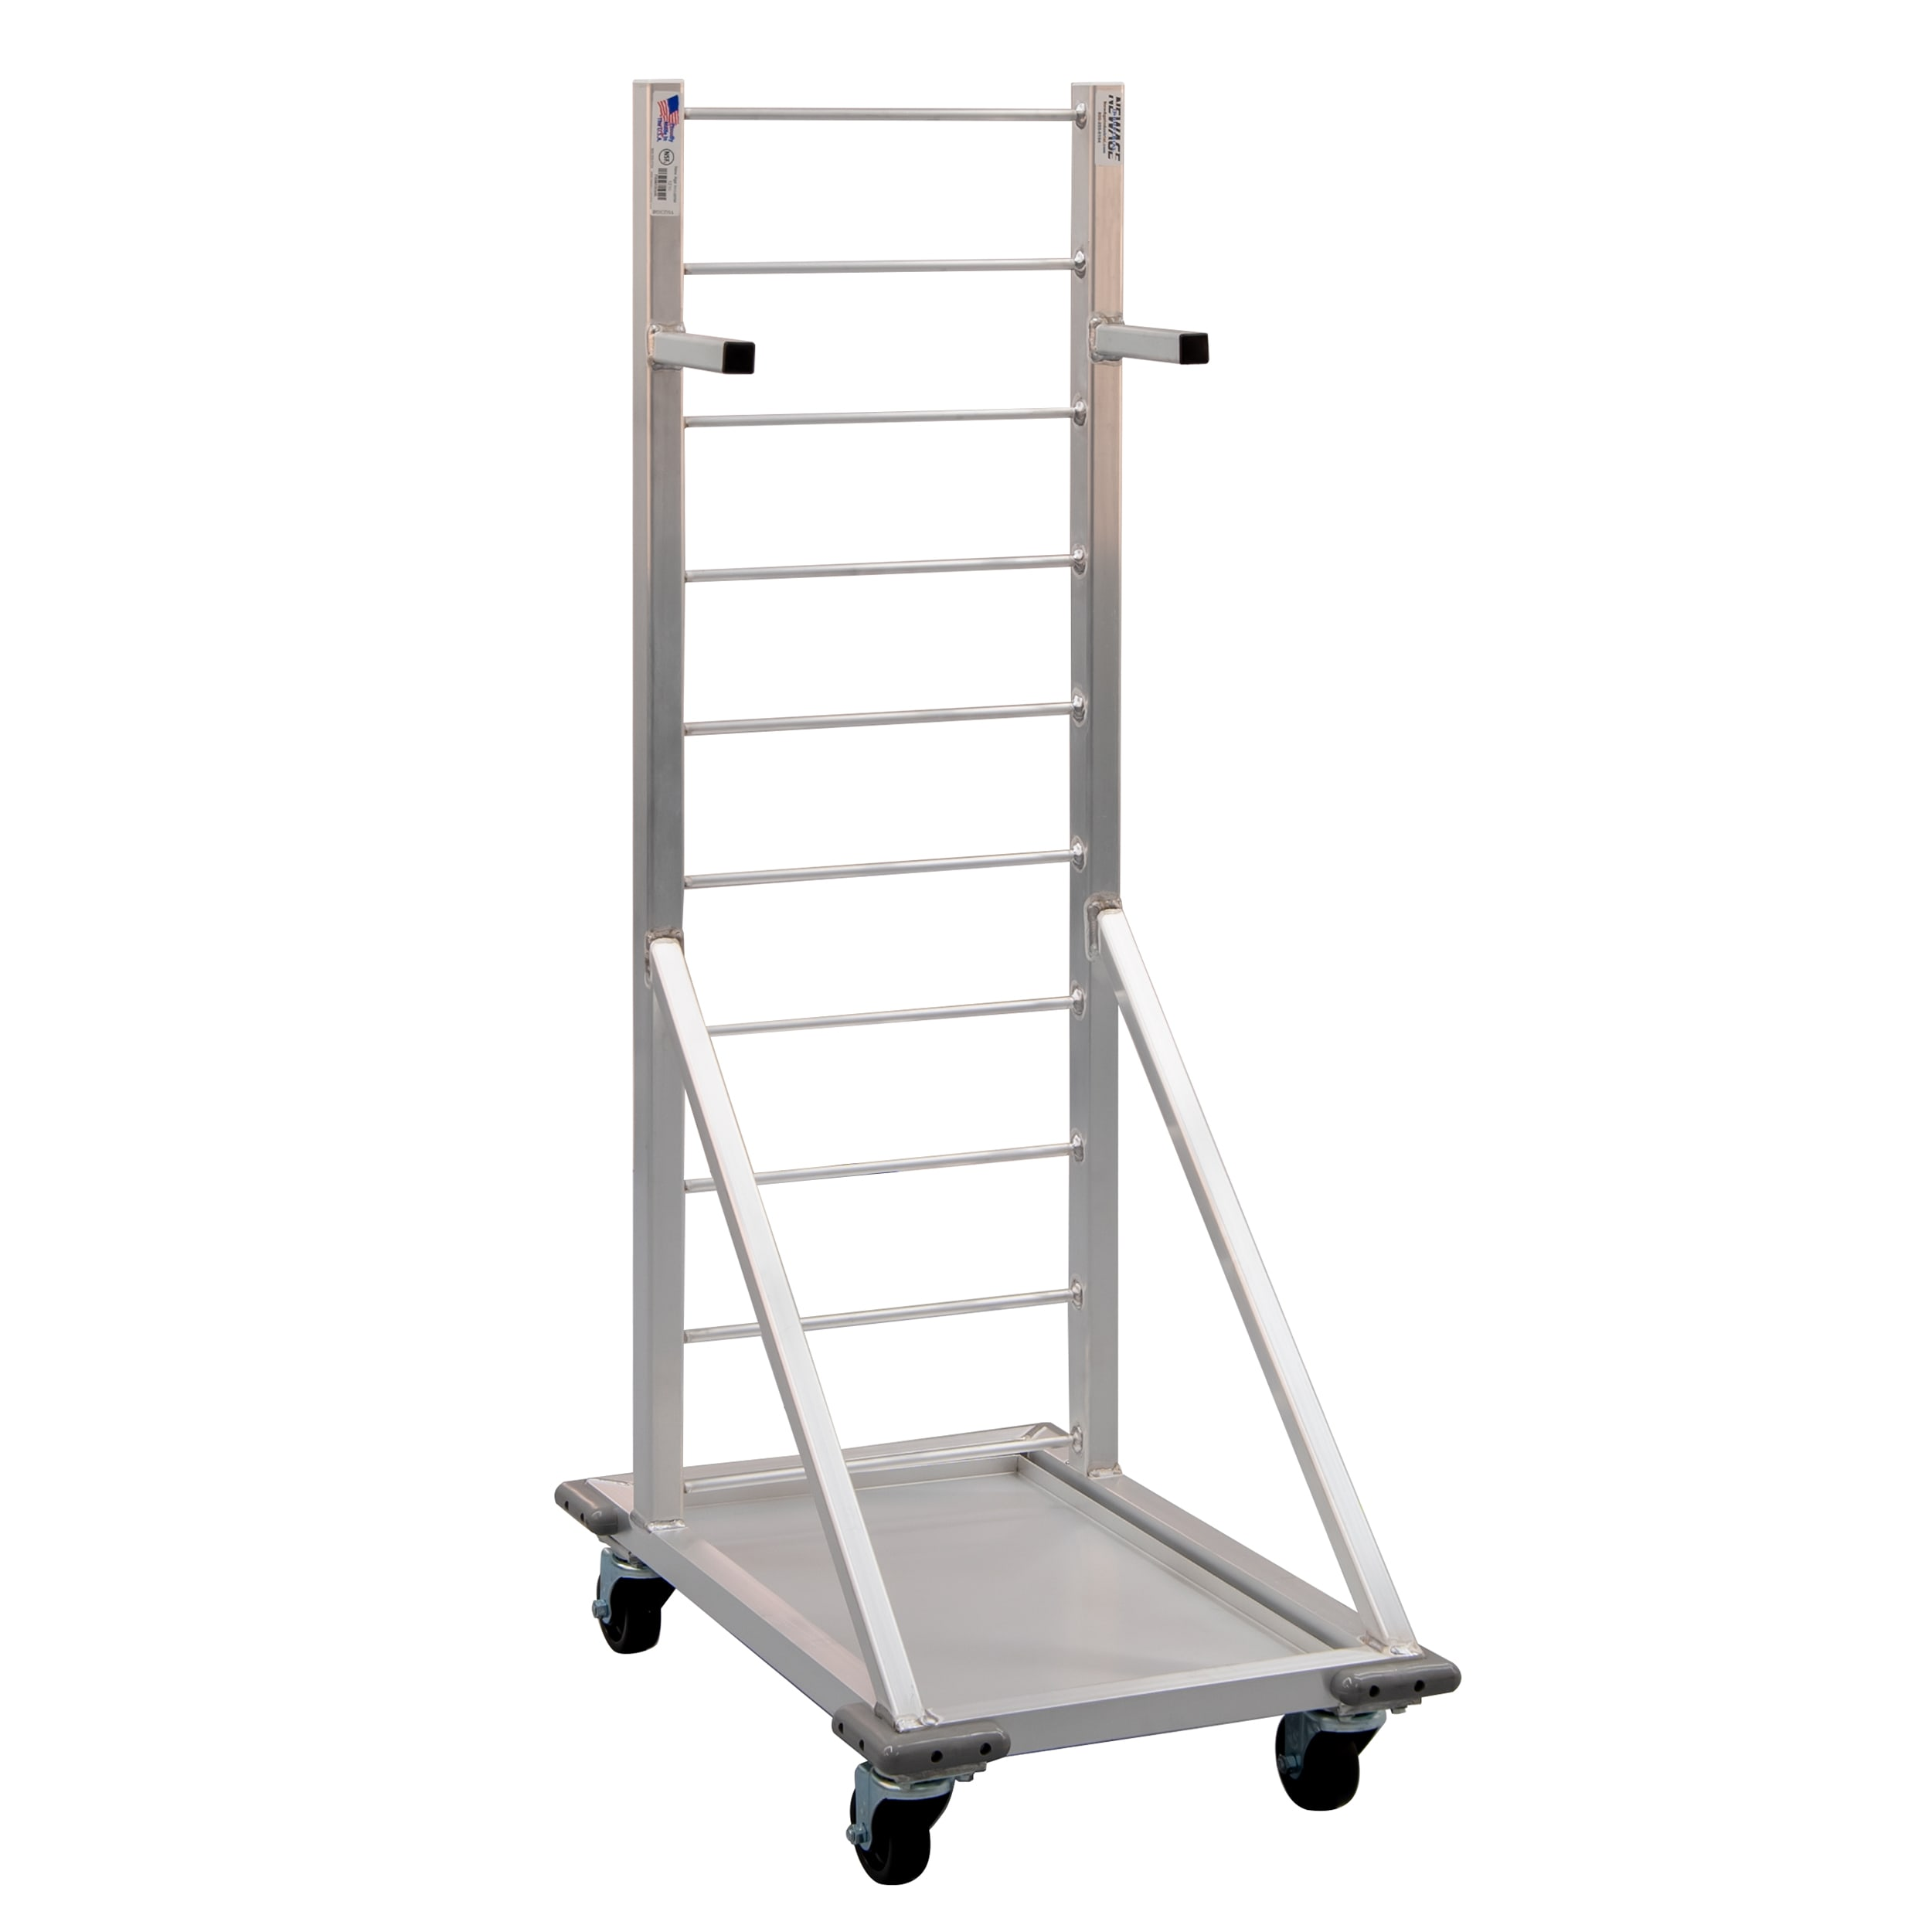 "New Age 1210 Fry Basket Rack w/ 18-Basket Capacity & 3"" Casters, 52.5x18x27"", Aluminum"